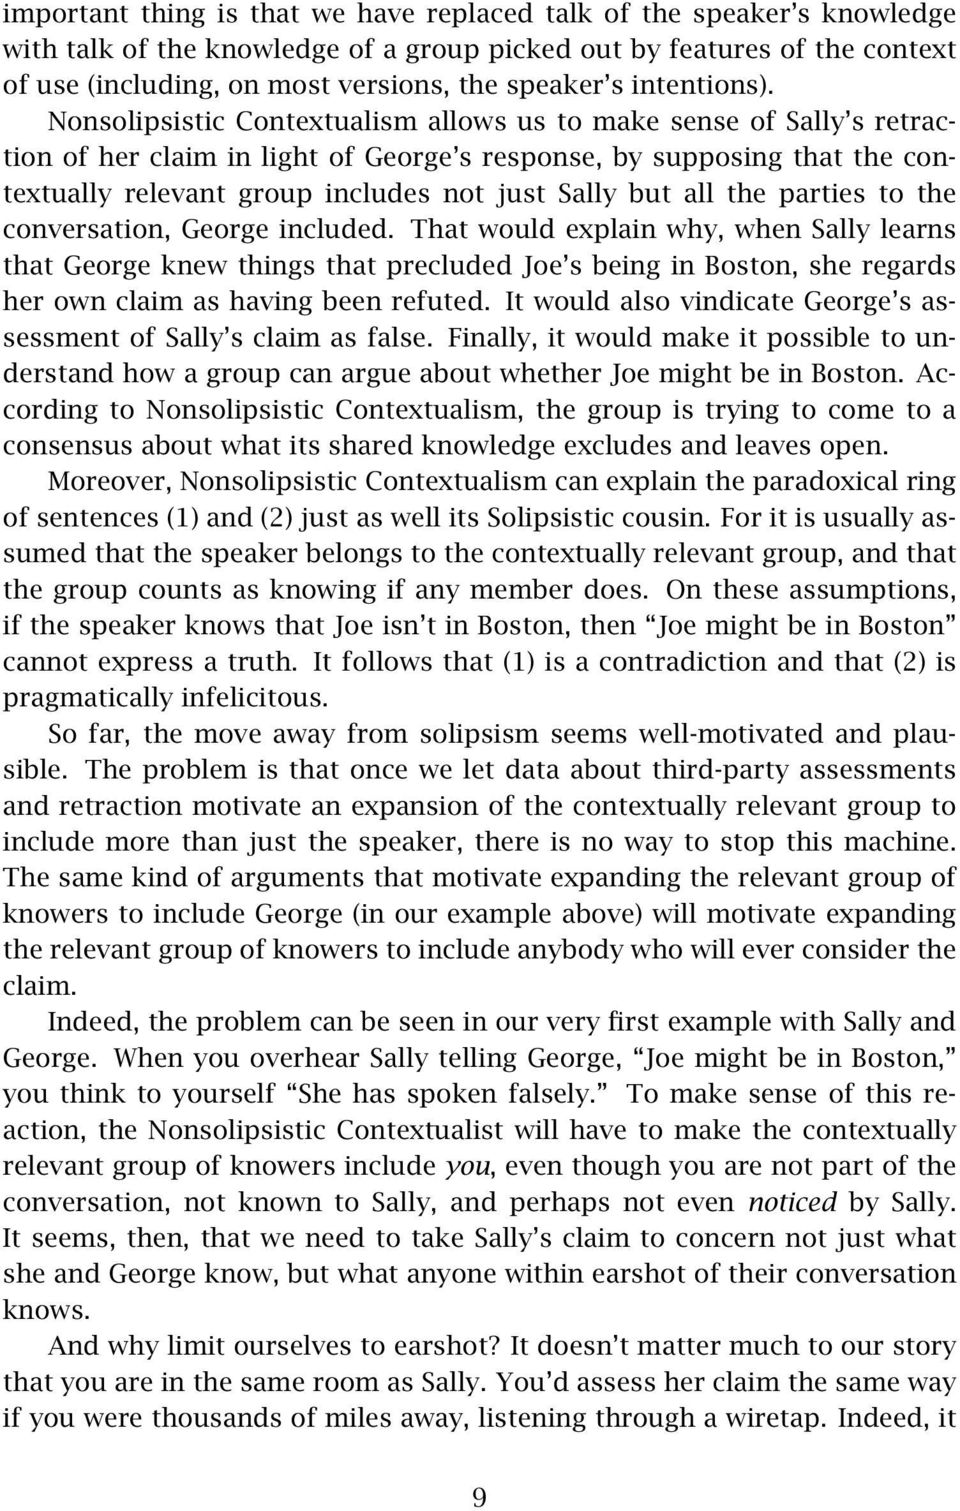 Nonsolipsistic Contextualism allows us to make sense of Sally s retraction of her claim in light of George s response, by supposing that the contextually relevant group includes not just Sally but